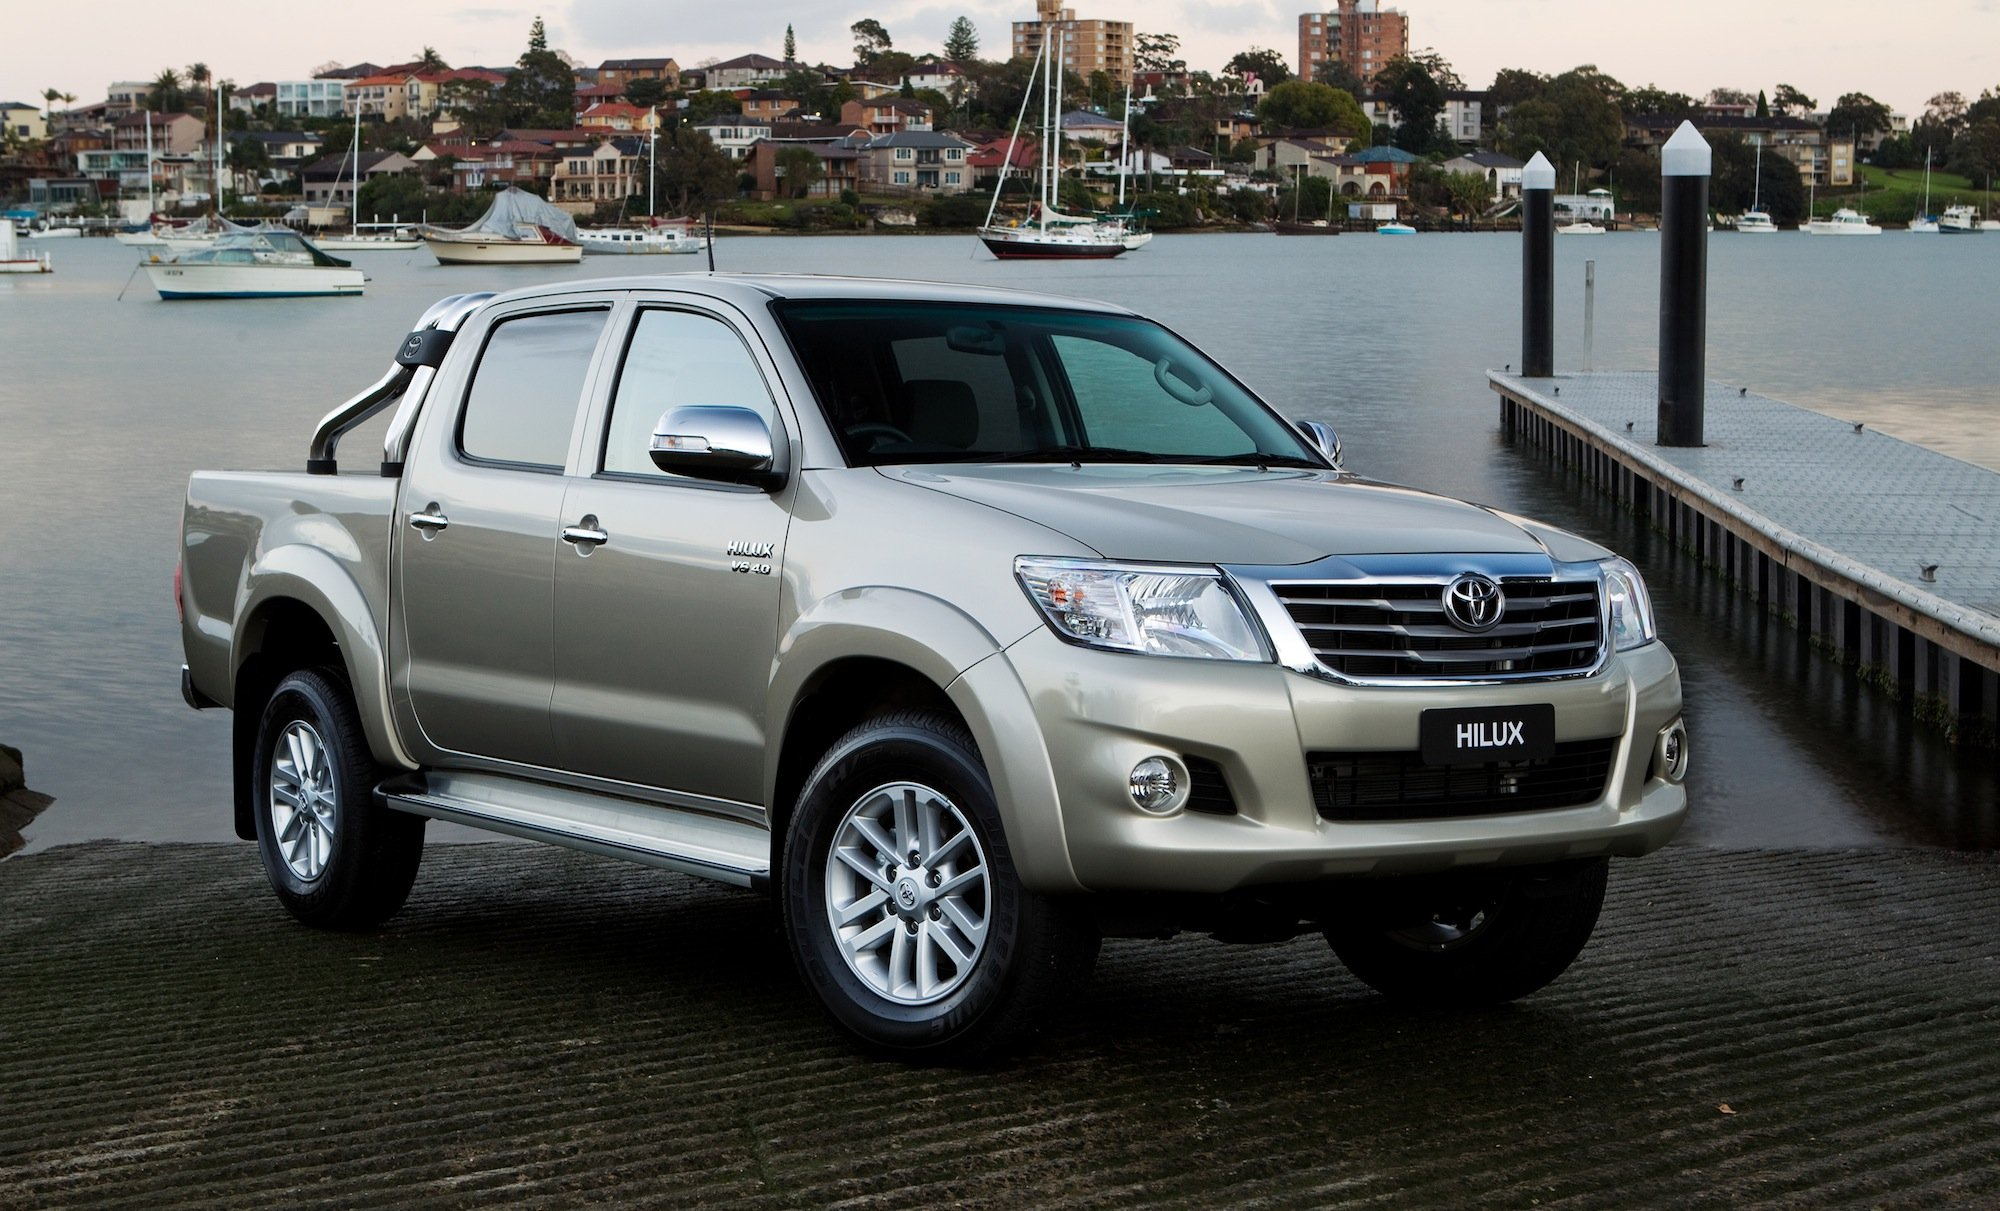 2014 Toyota Hilux New Auto Safety Upgrades Price Rises